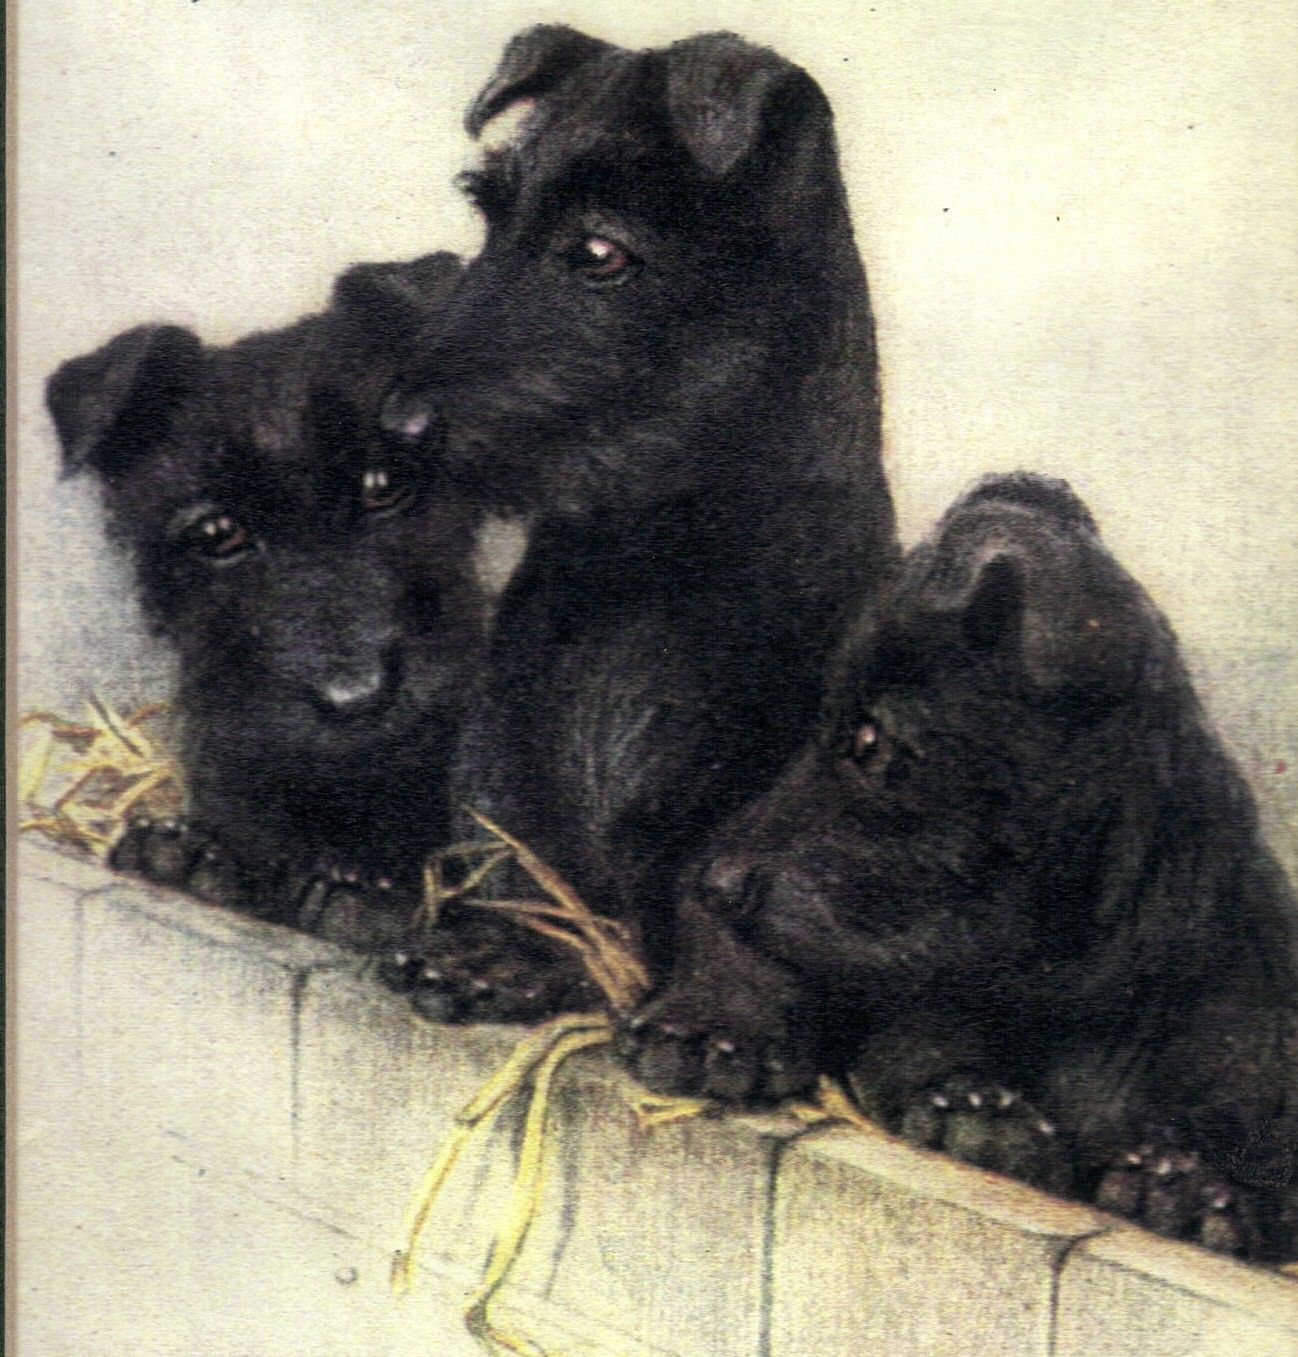 ♦Google Image Result for http://content.breederoo.com/users/Brigadoons/images/content/old_scottie_puppy_s.jpg